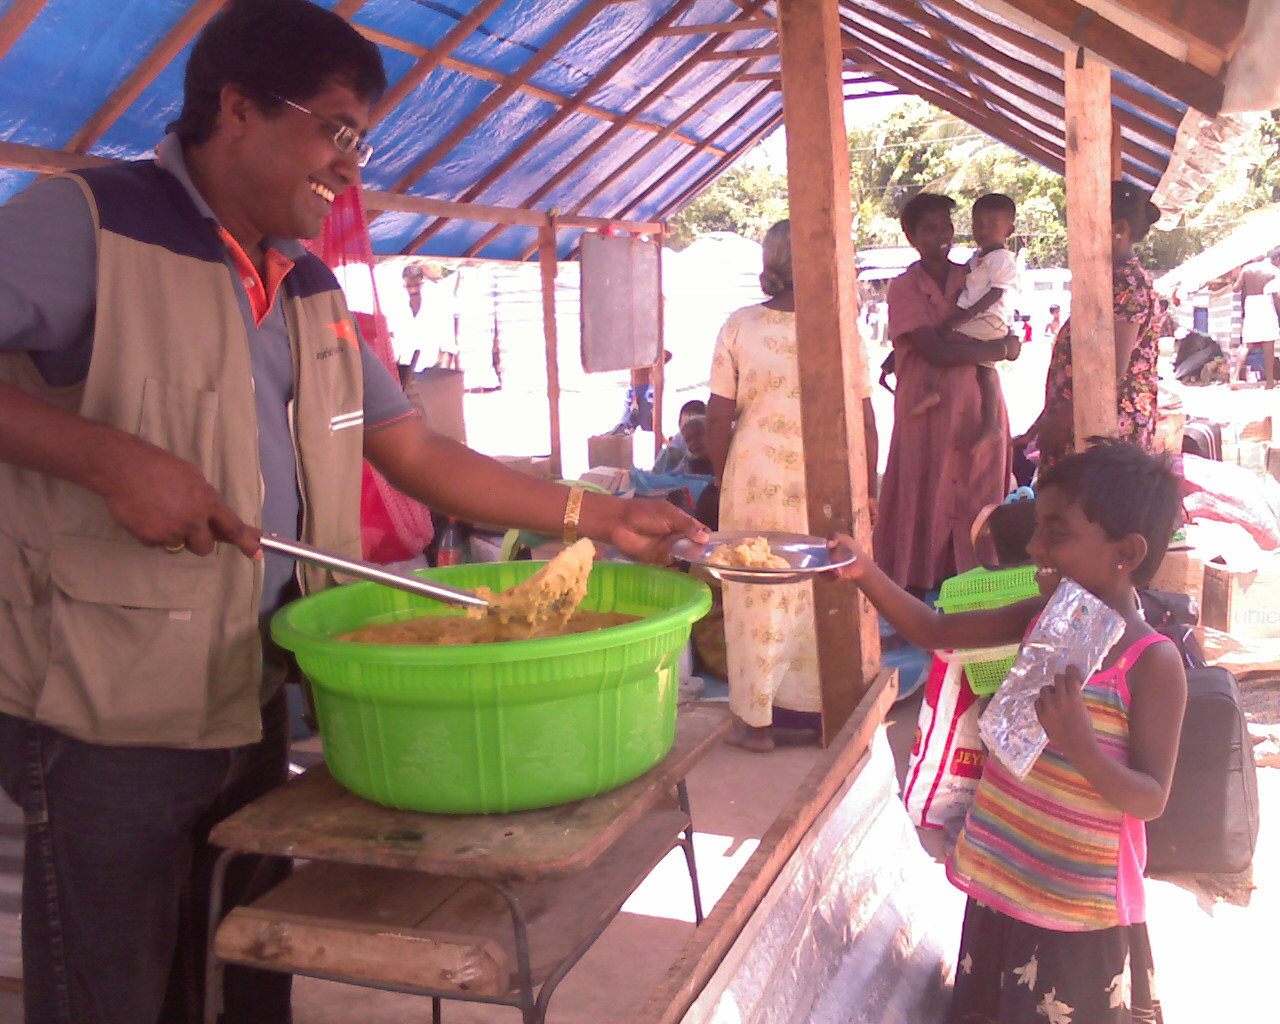 A young girl receives food assistance at an IDP camp in northern Sri Lanka. The nutritional status of thousands of children in the camps is a source of concern for aid workers on the ground